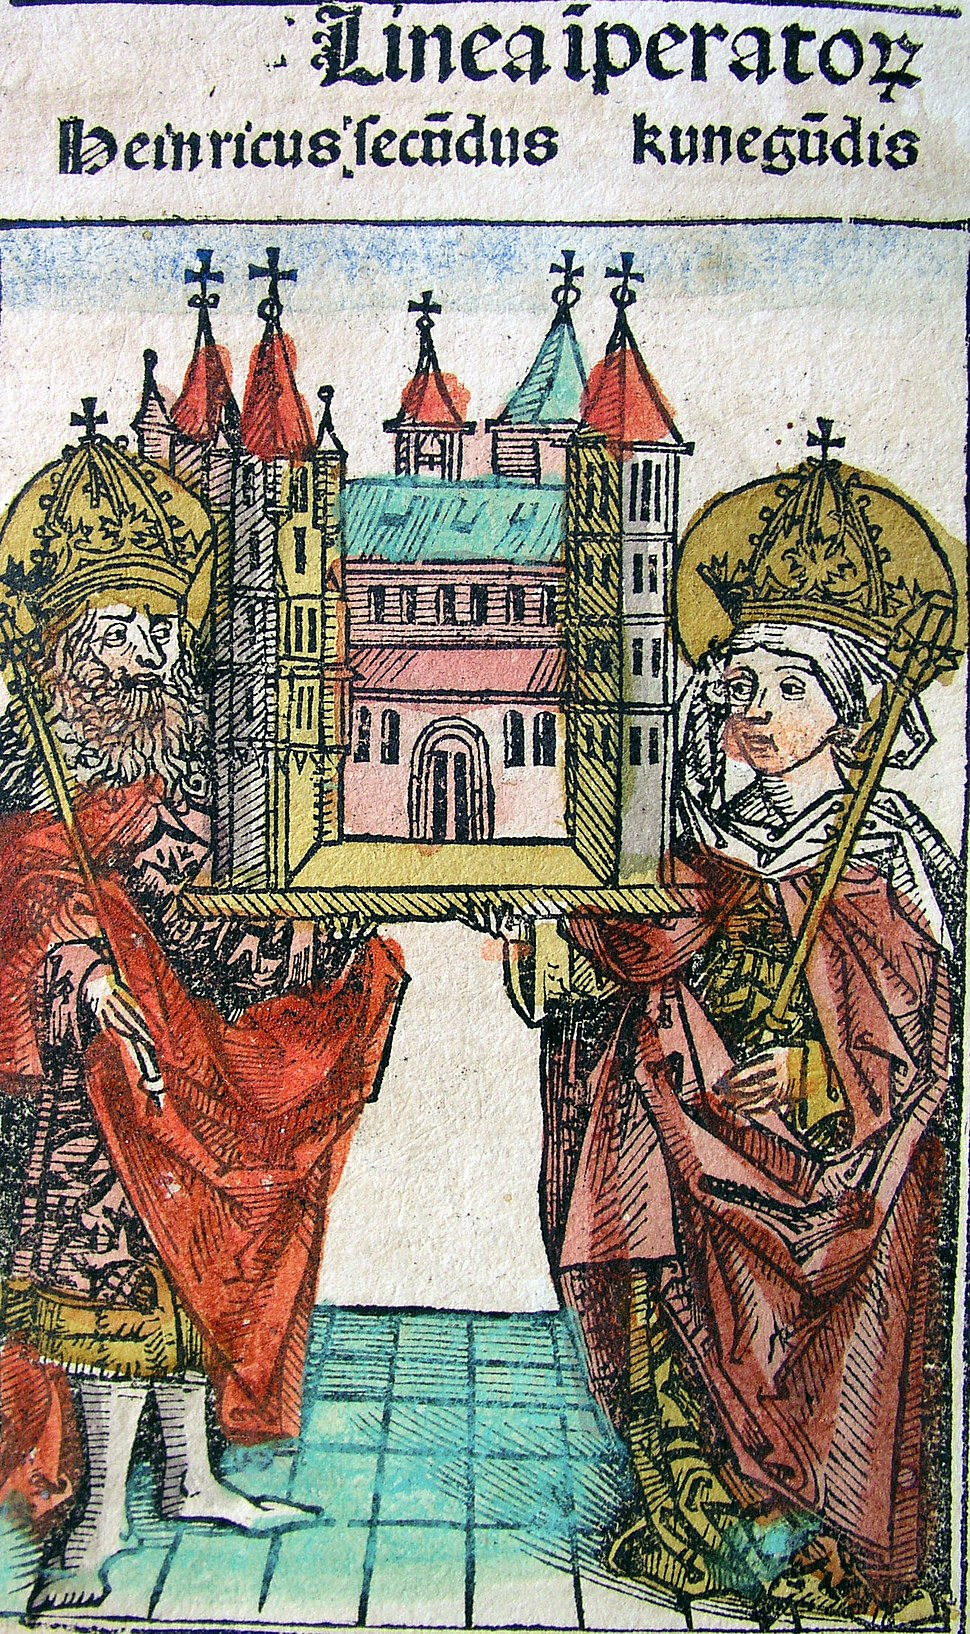 Nuremberg chronicles - Henry II and Cunegundis (CLXXXVIr)